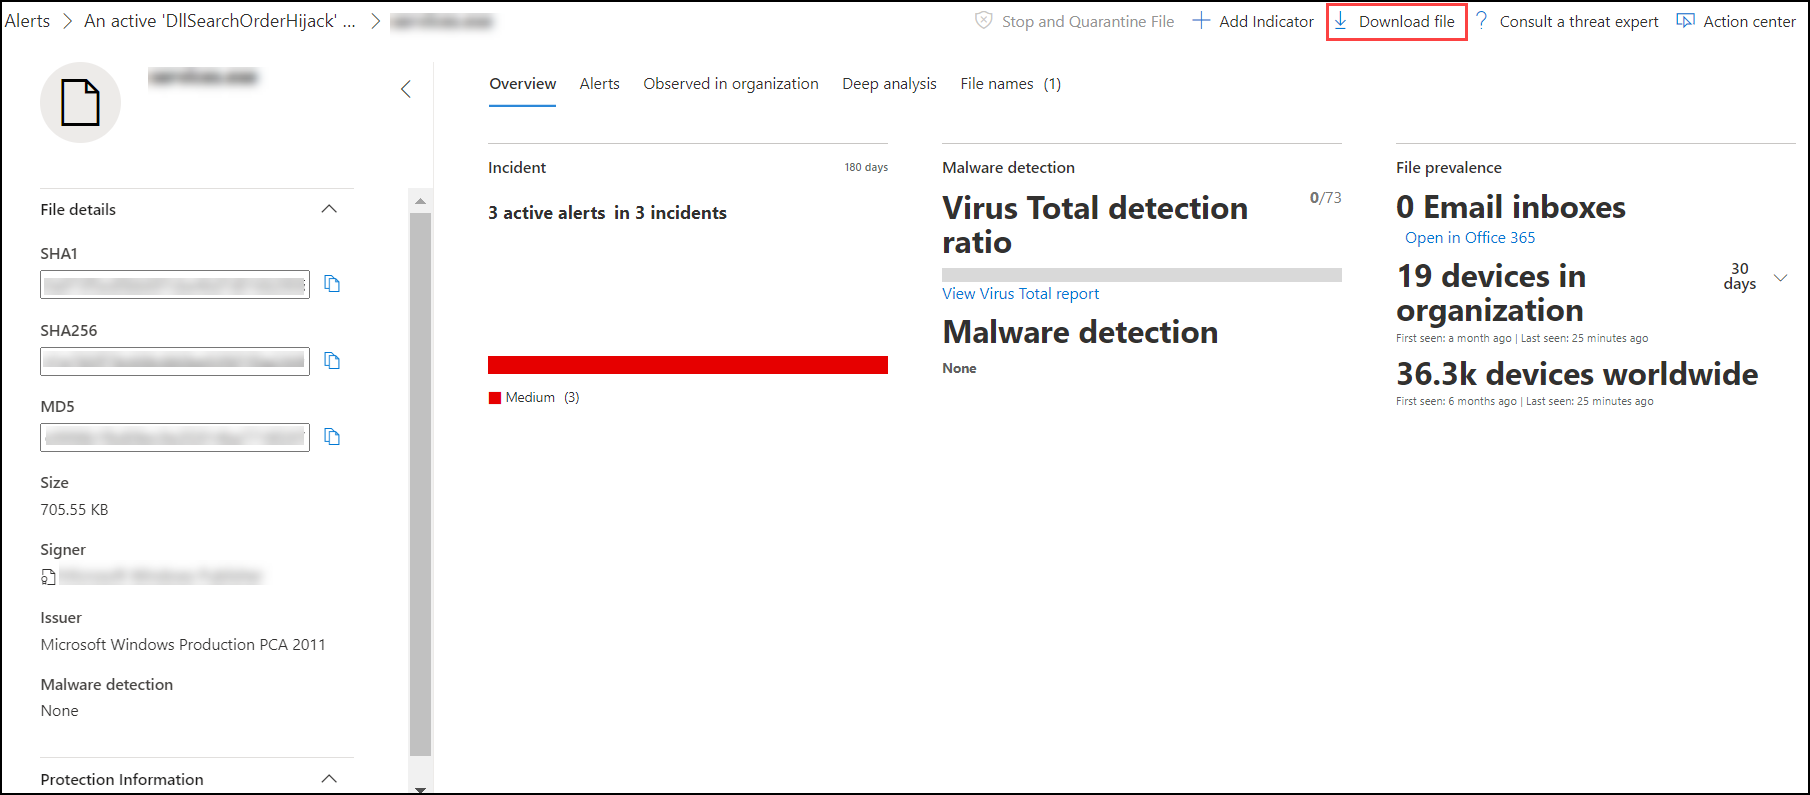 Take response actions on a file in Microsoft Defender ATP